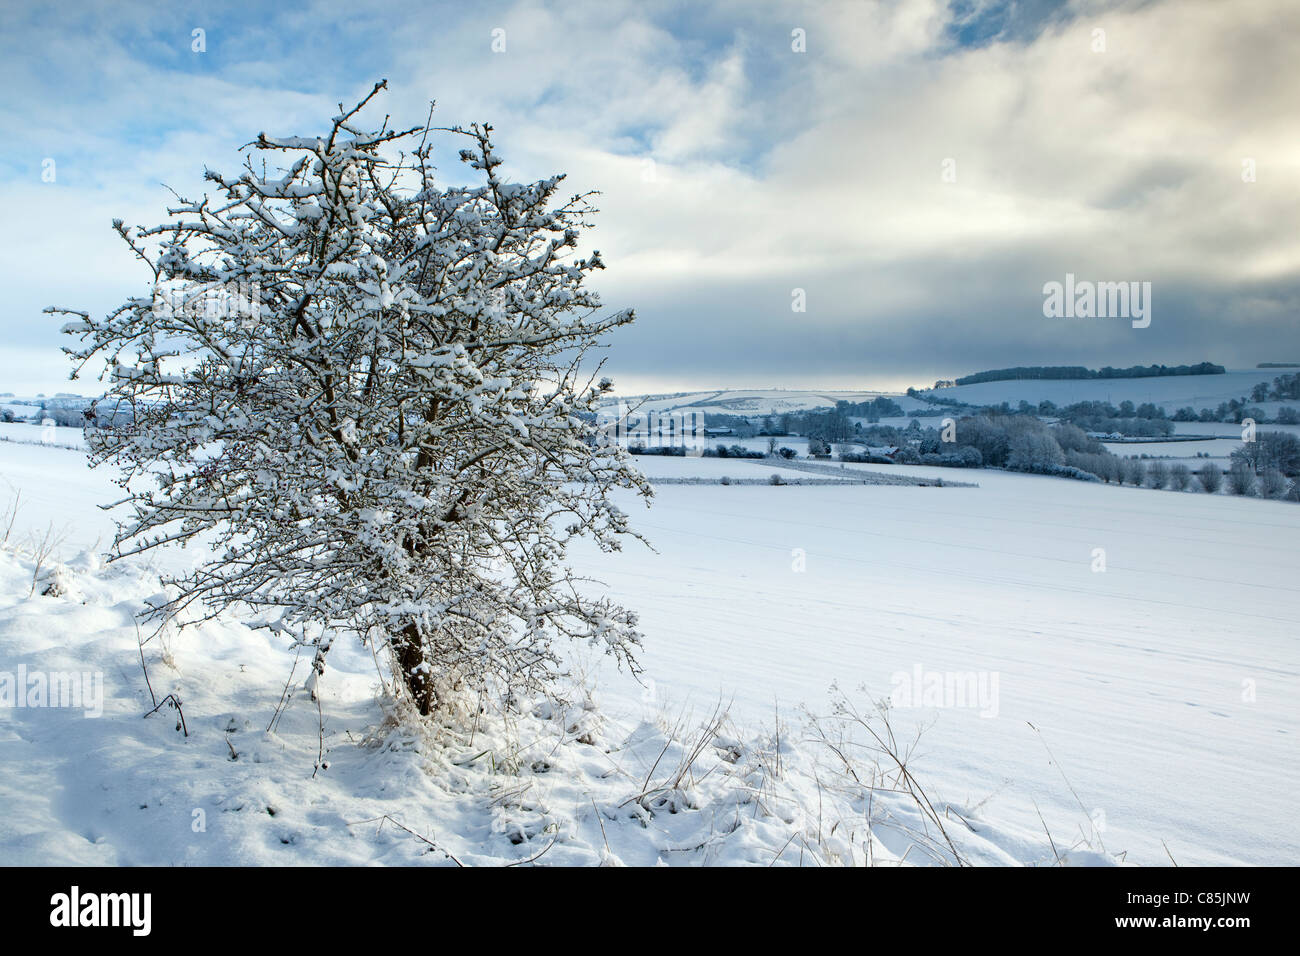 A winter view with a snow covered hawthorn tree and clearing snow clouds above Knighton Hill, Broad Chalke Wiltshire - Stock Image